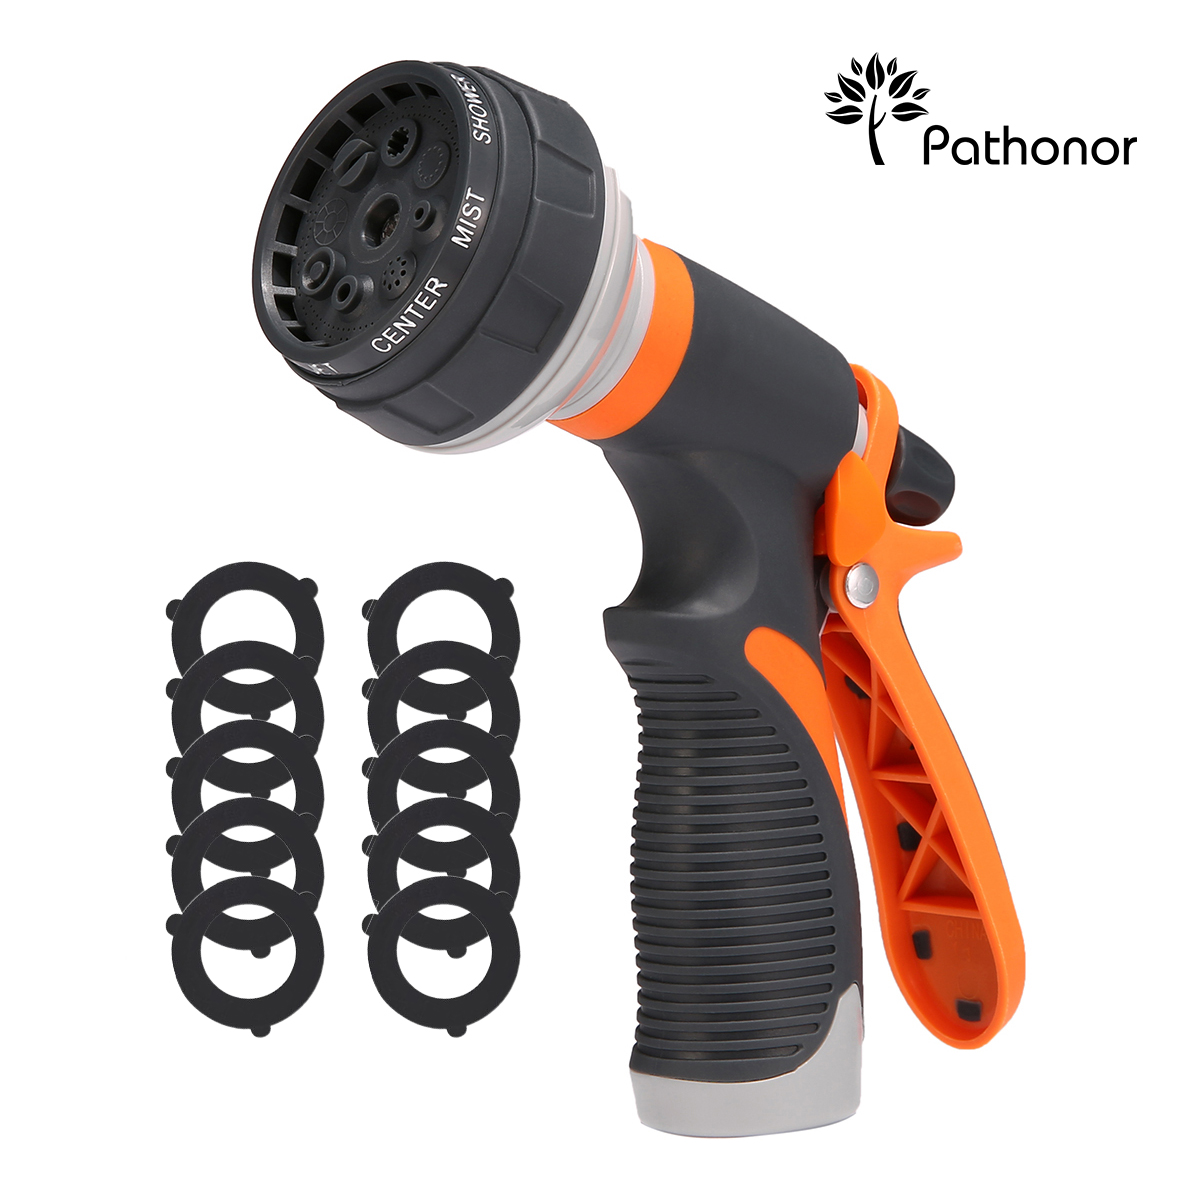 PATHONOR Garden Hose Nozzle, Garden Hose Spray Nozzle Heave Duty 8 Pattern Adjustable Multifunctional Watering Nozzle For Watering Plants, Car Washing, Shower Pets